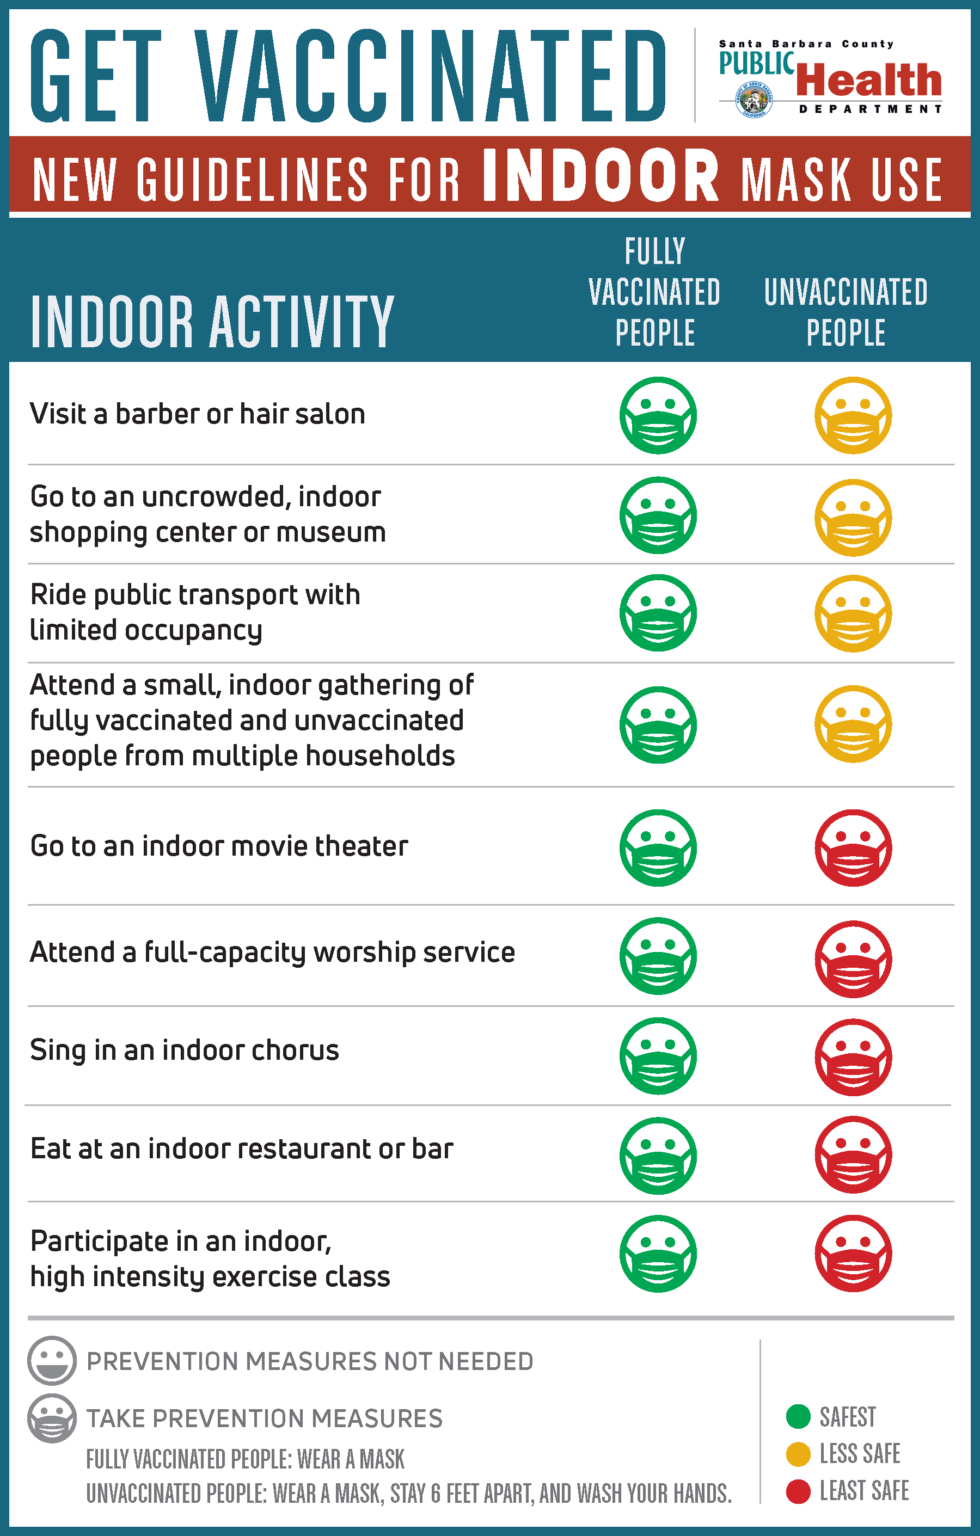 indoor mask guidelines from Public Health